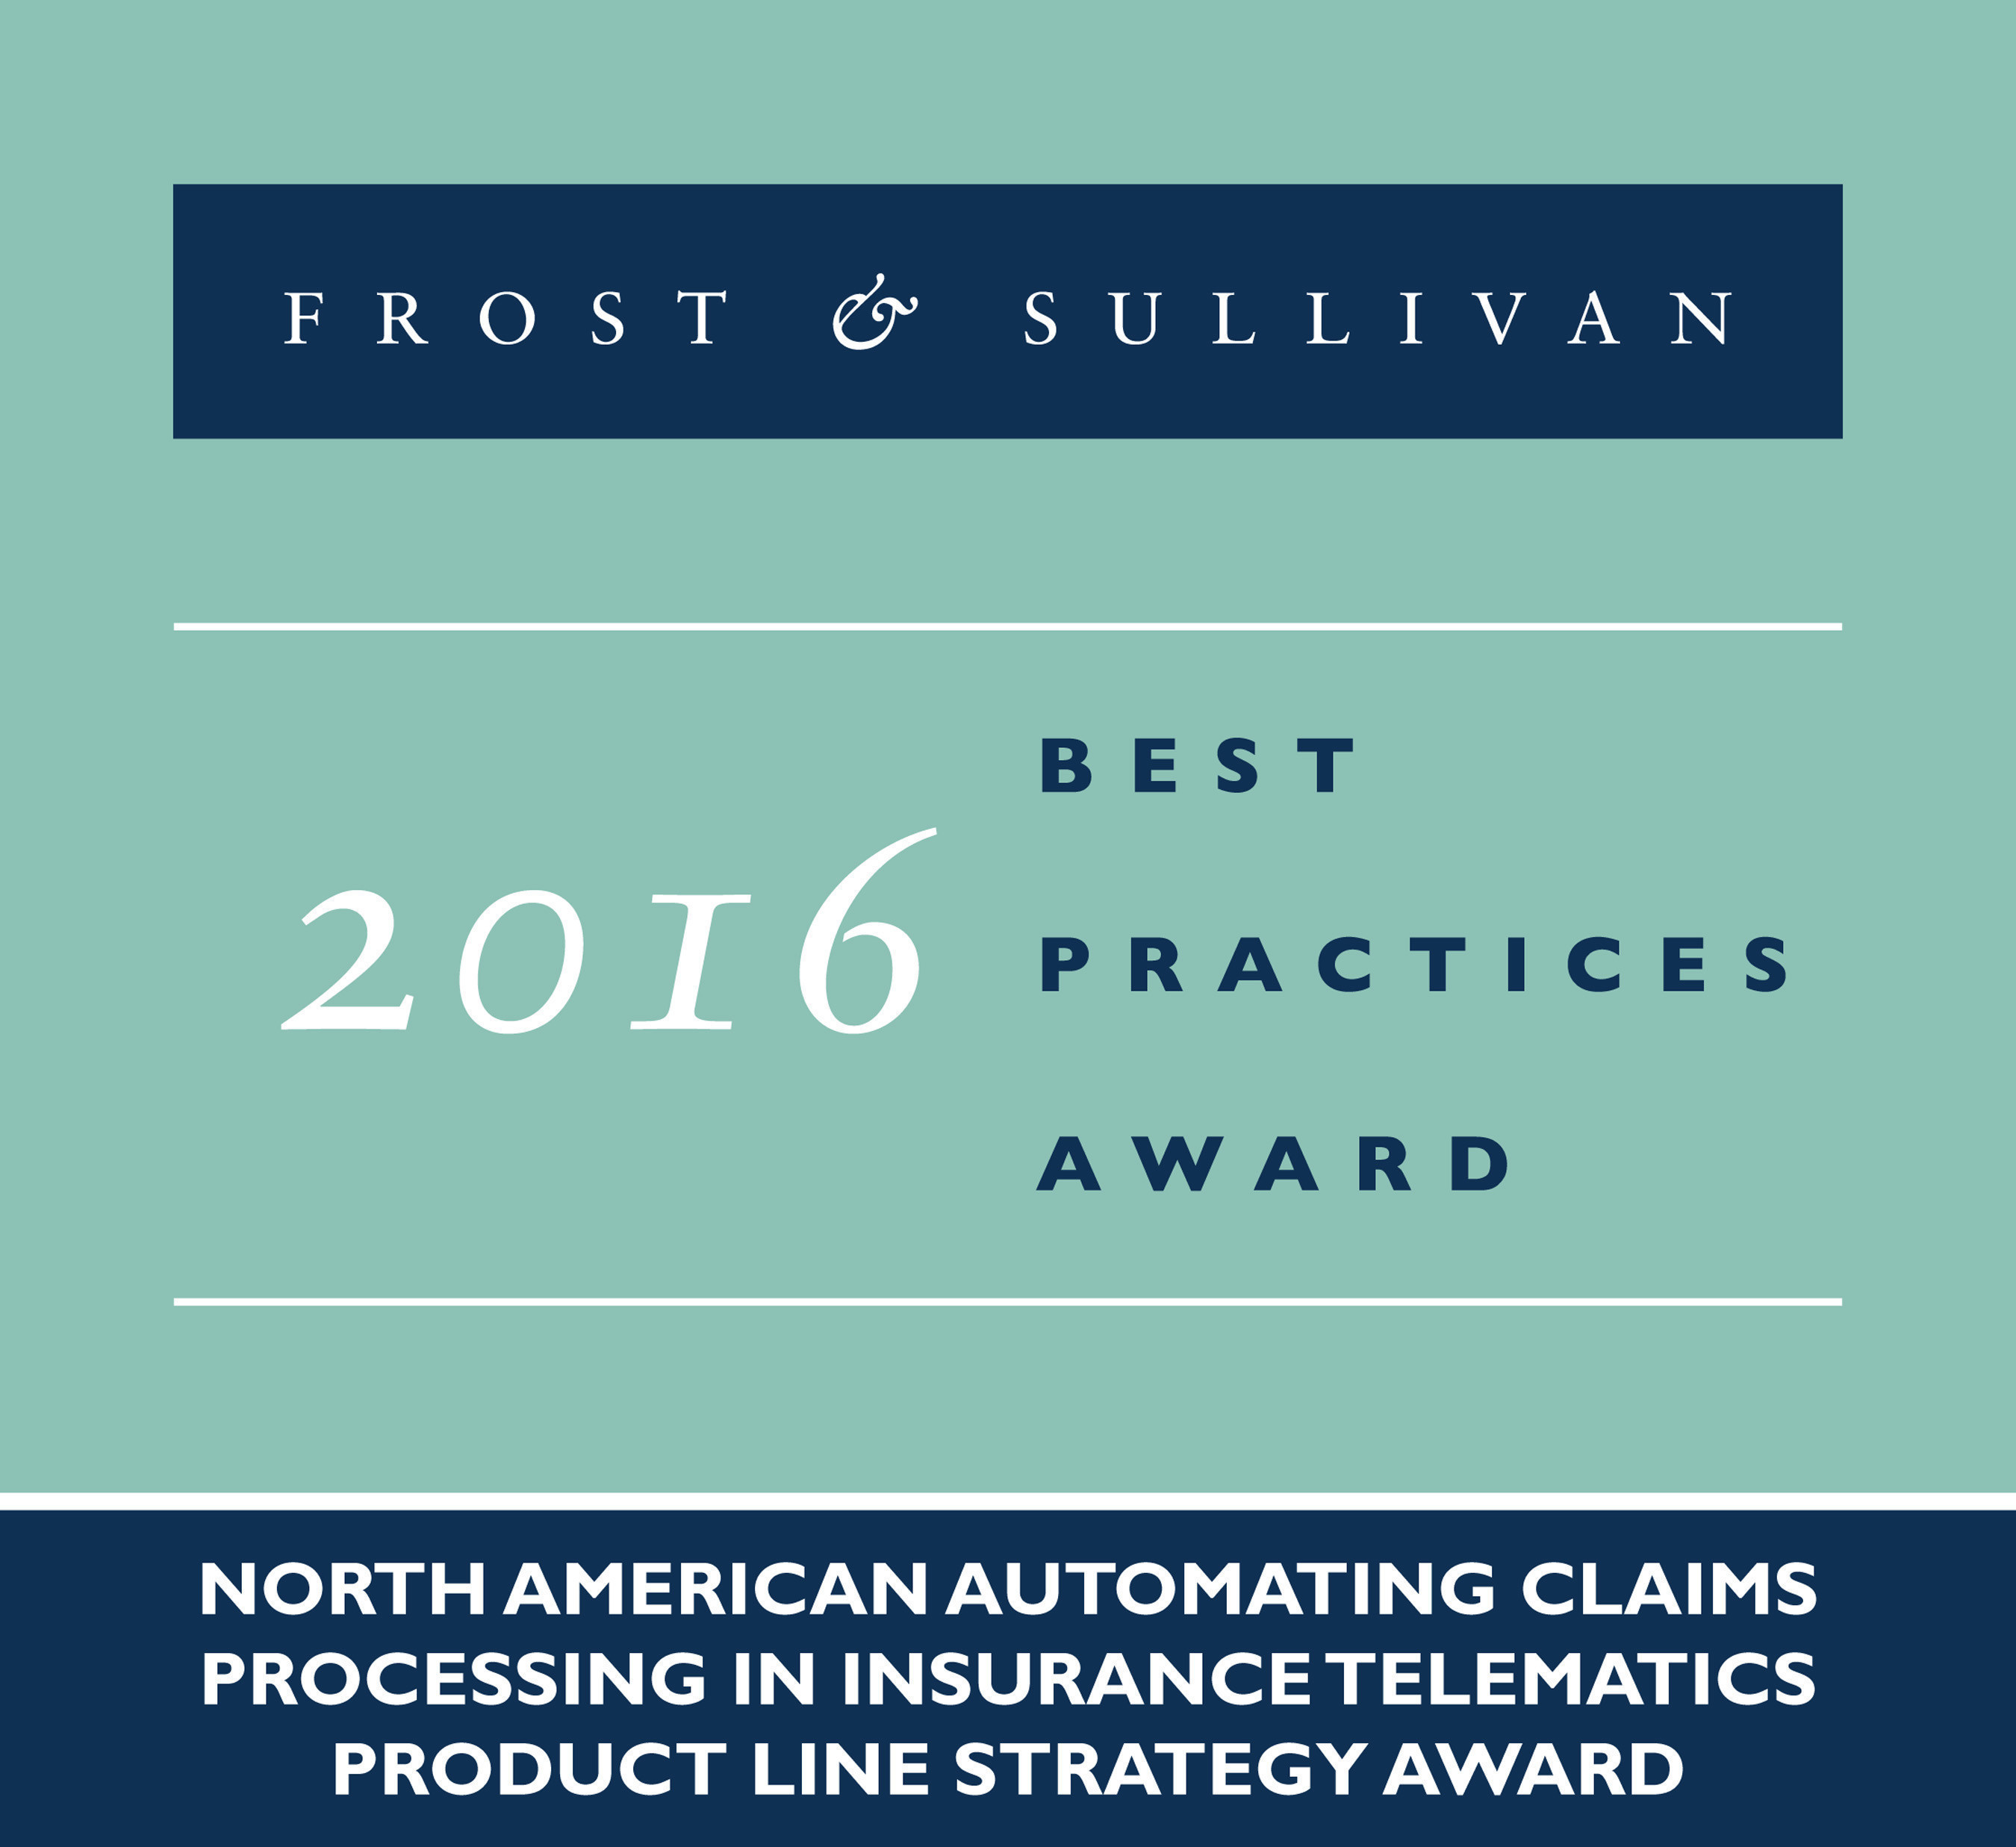 Understanding And Addressing Processing >> Frost Sullivan Announces Calamp As Recipient Of 2016 Product Line